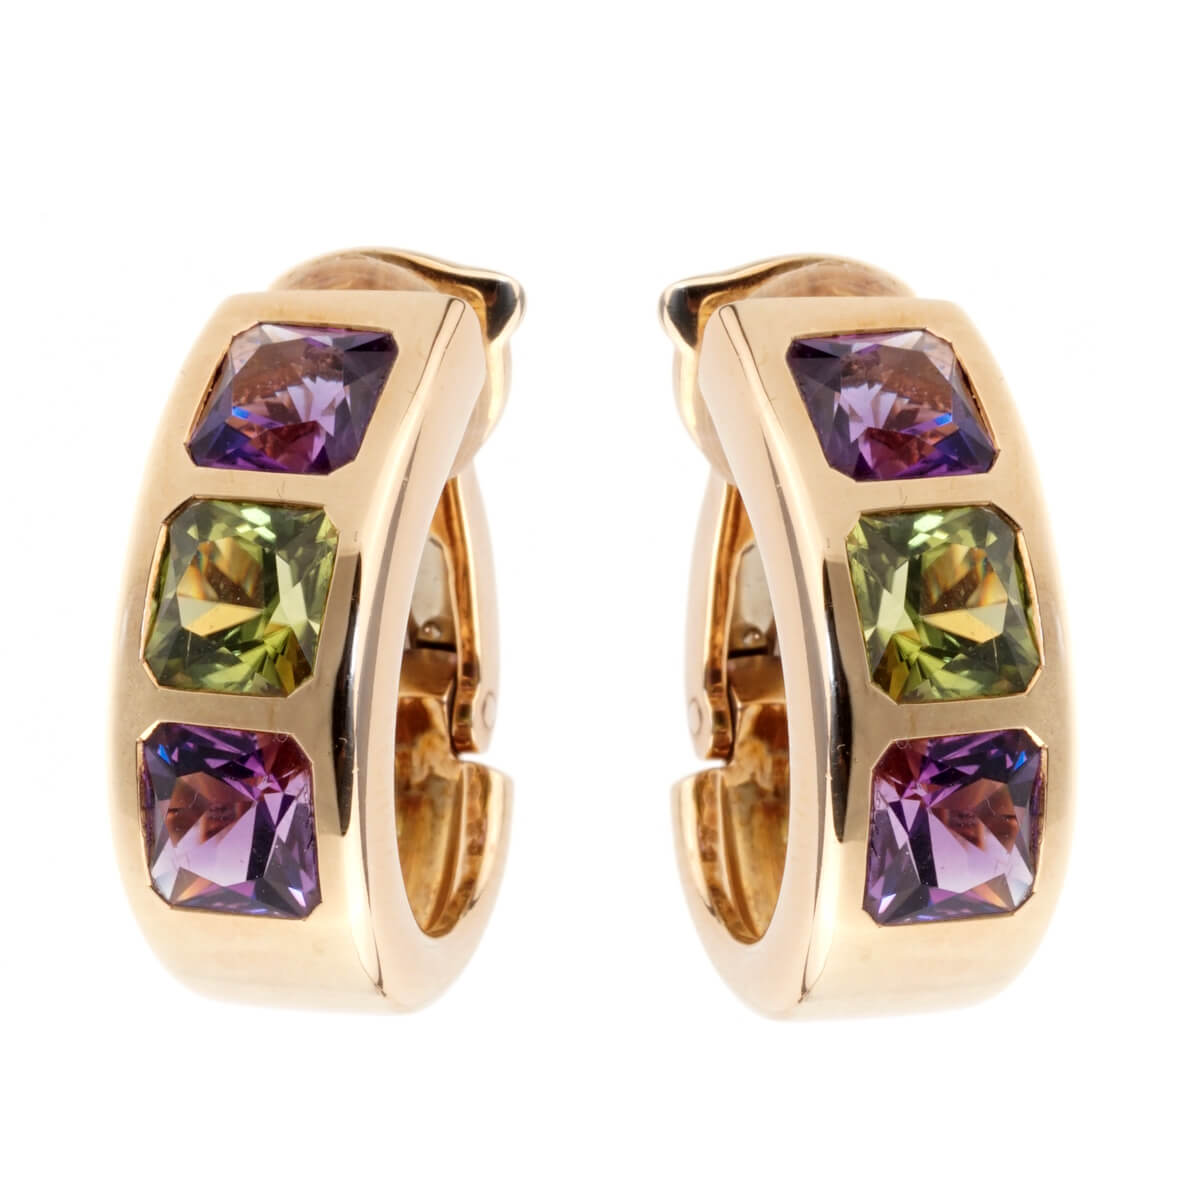 Van Cleef & Arpels Amethyst Peridot 18k Yellow Gold Earrings